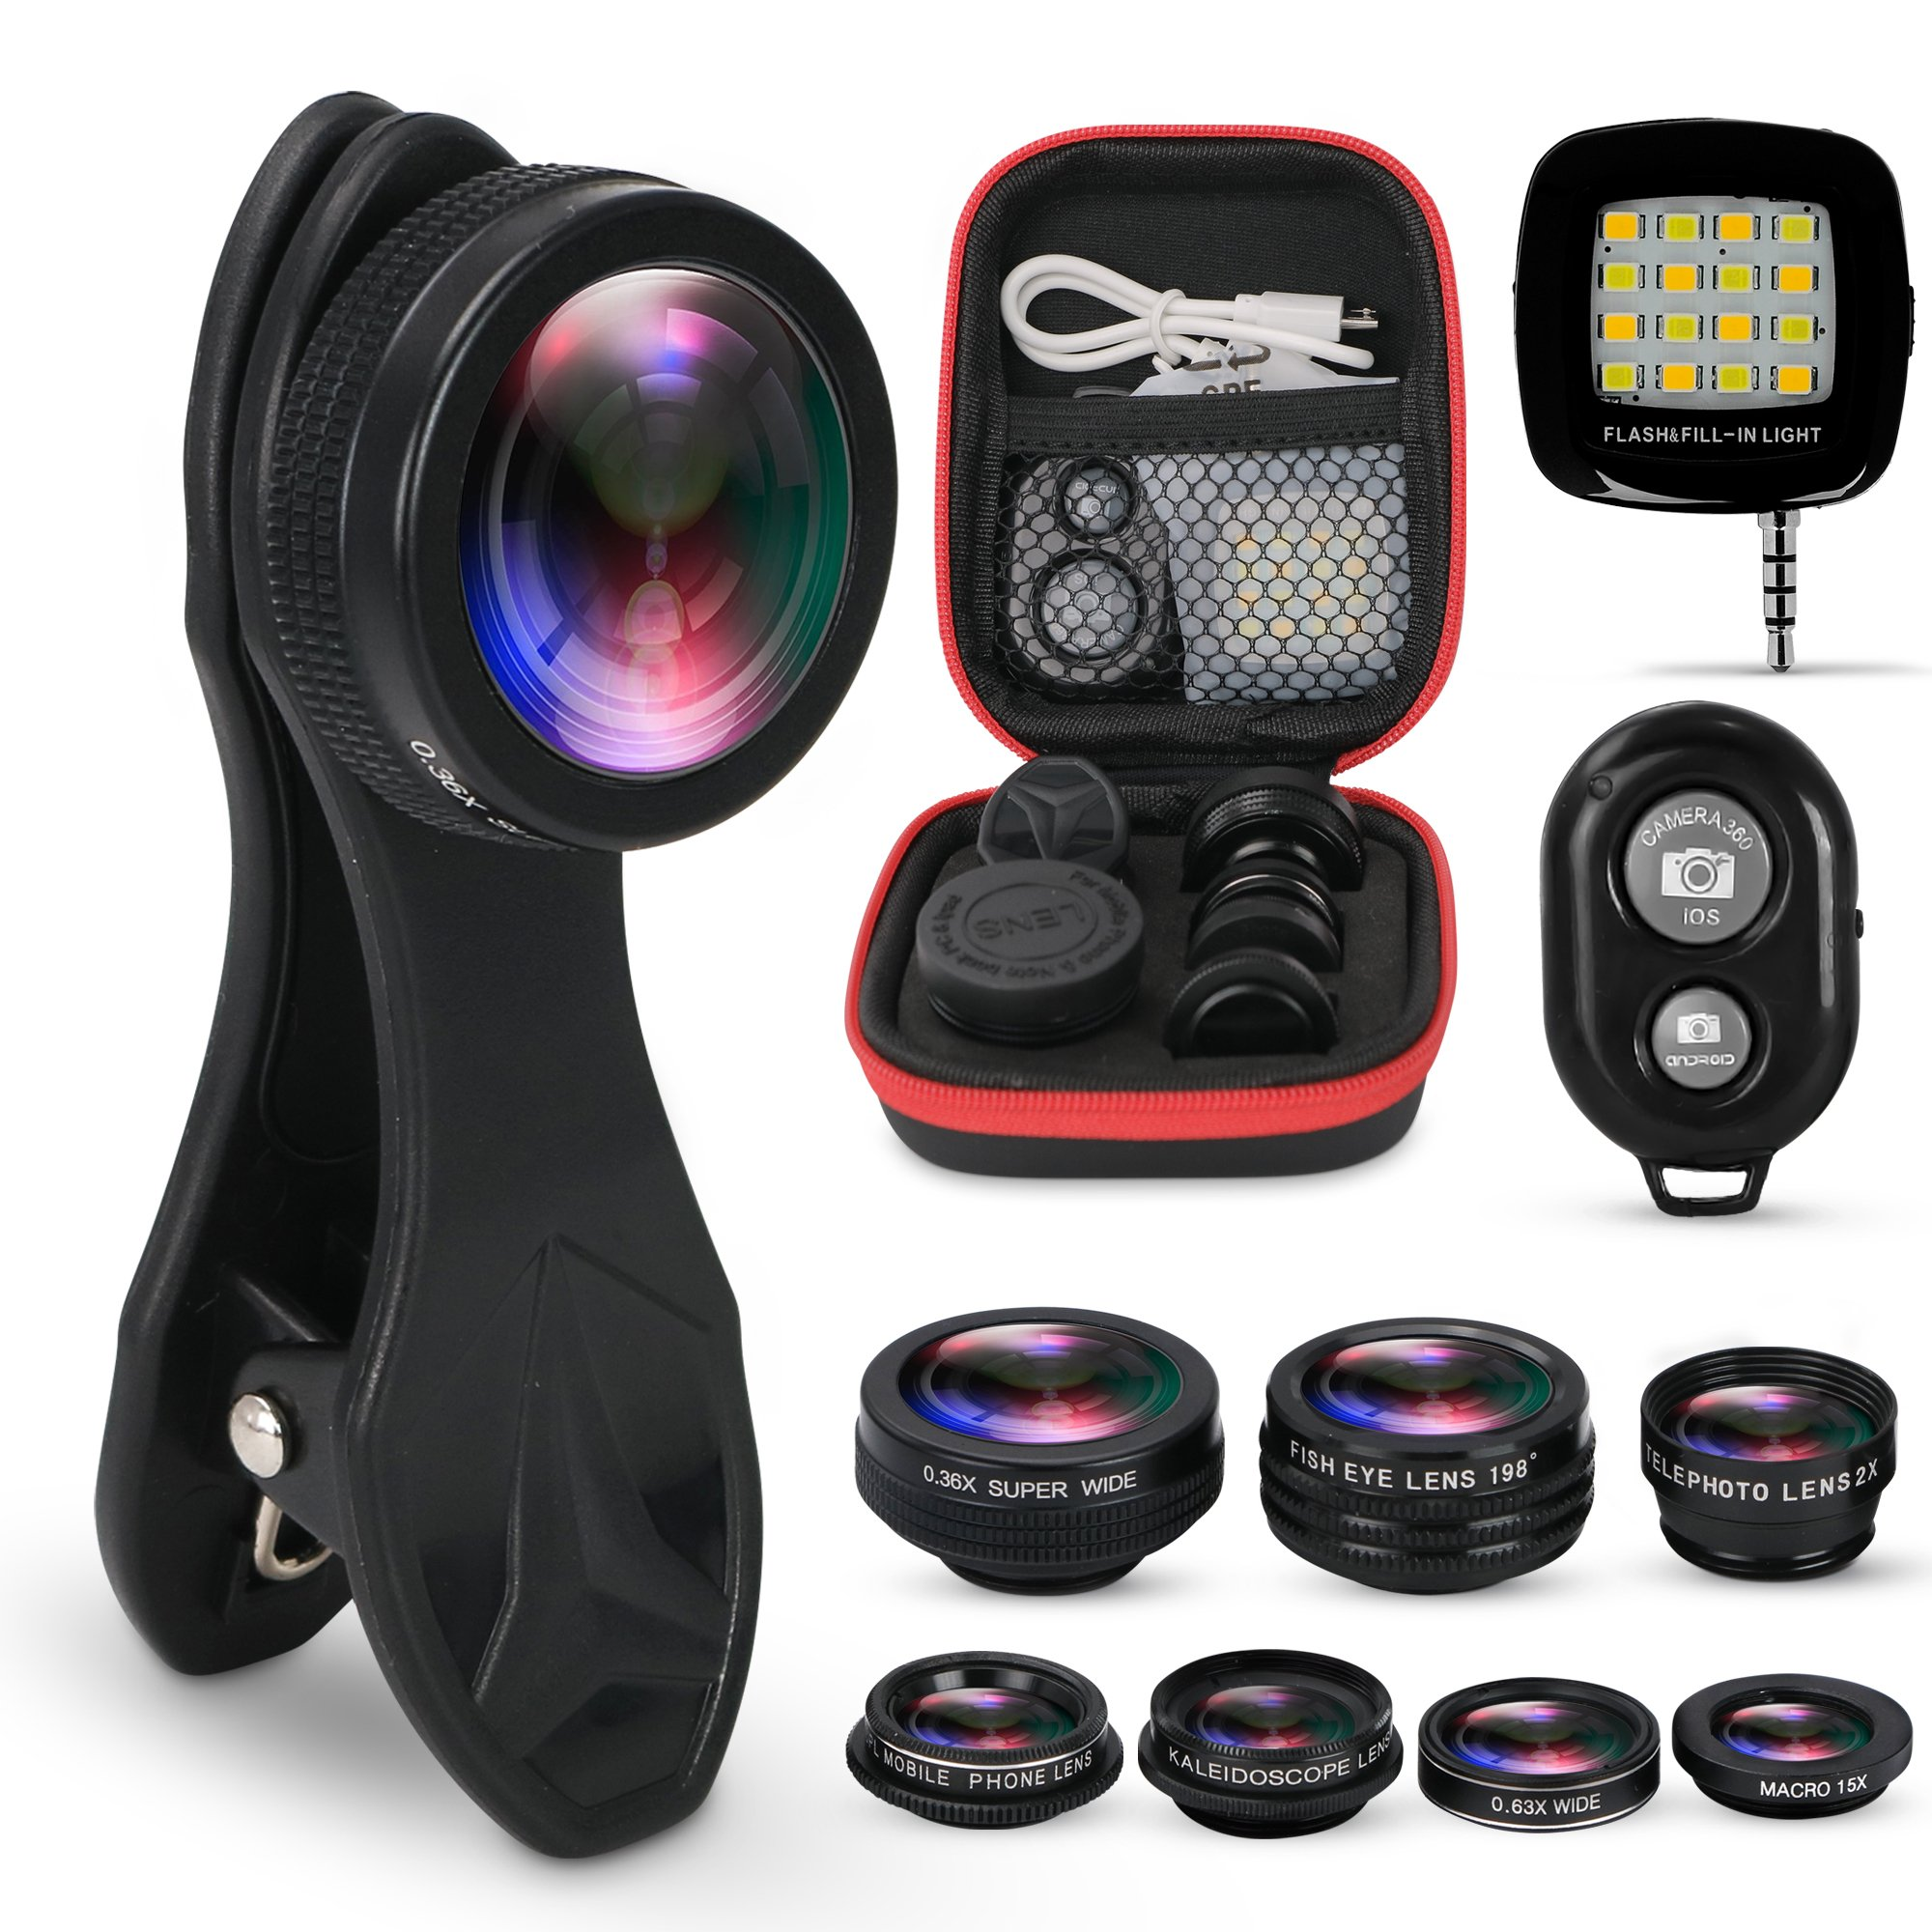 KobraTech 9 in 1 Cell Phone Camera Lens Kit - Phone Lens iPhone & Android - Super Wide Angle, Macro, Kaleidoscope, Telephoto, CPL, Fisheye Lens + Remote LED Light by KobraTech